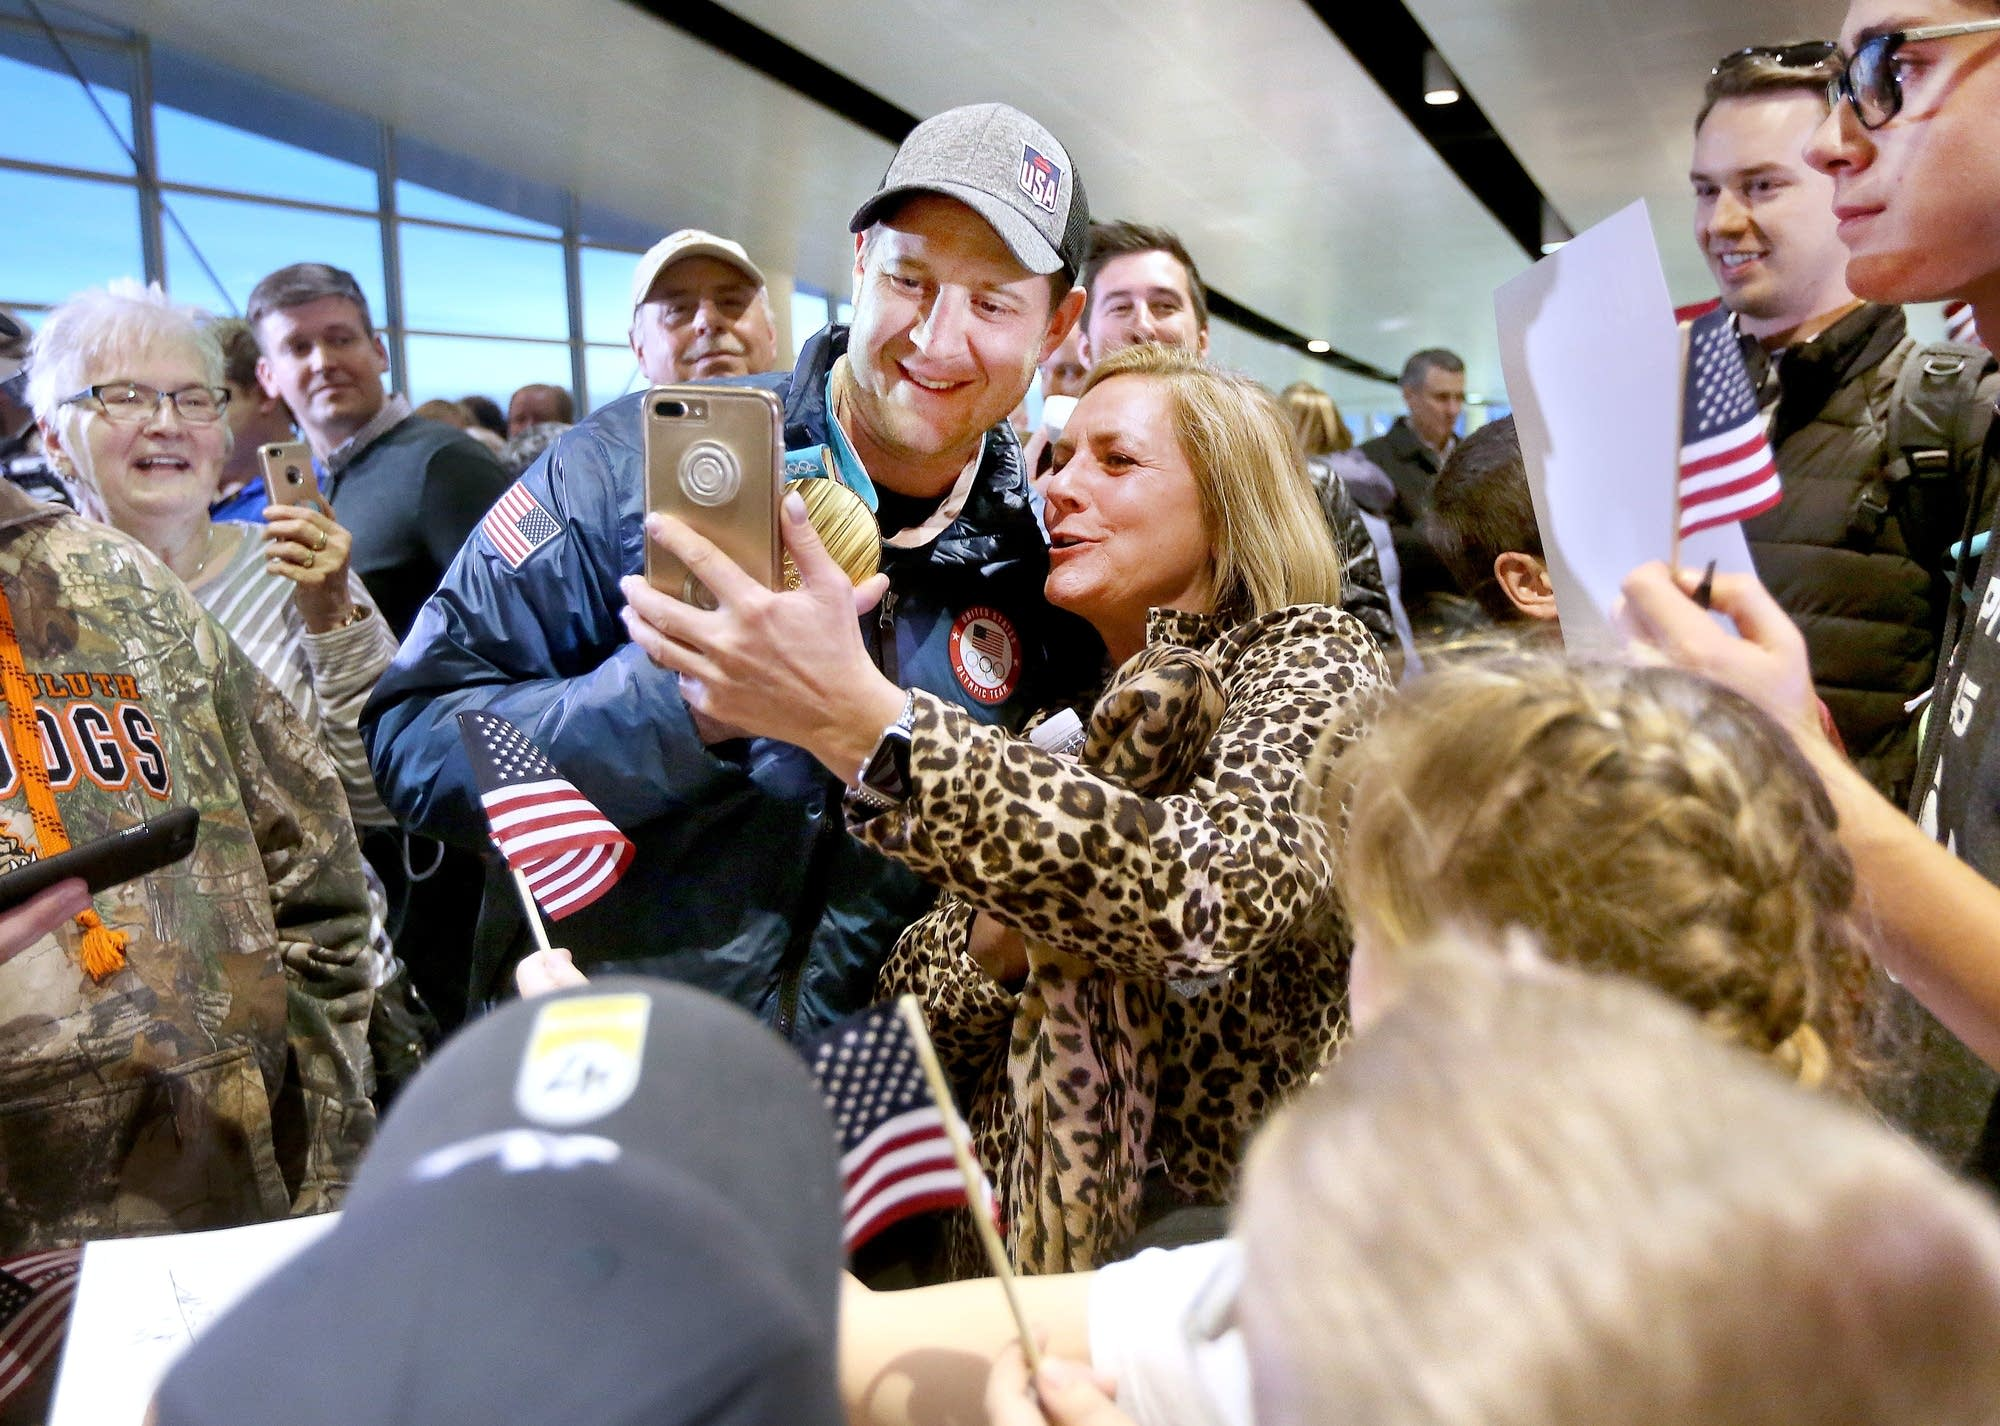 Nancy Litman of Duluth, a friend of John Shuster, takes a selfie.